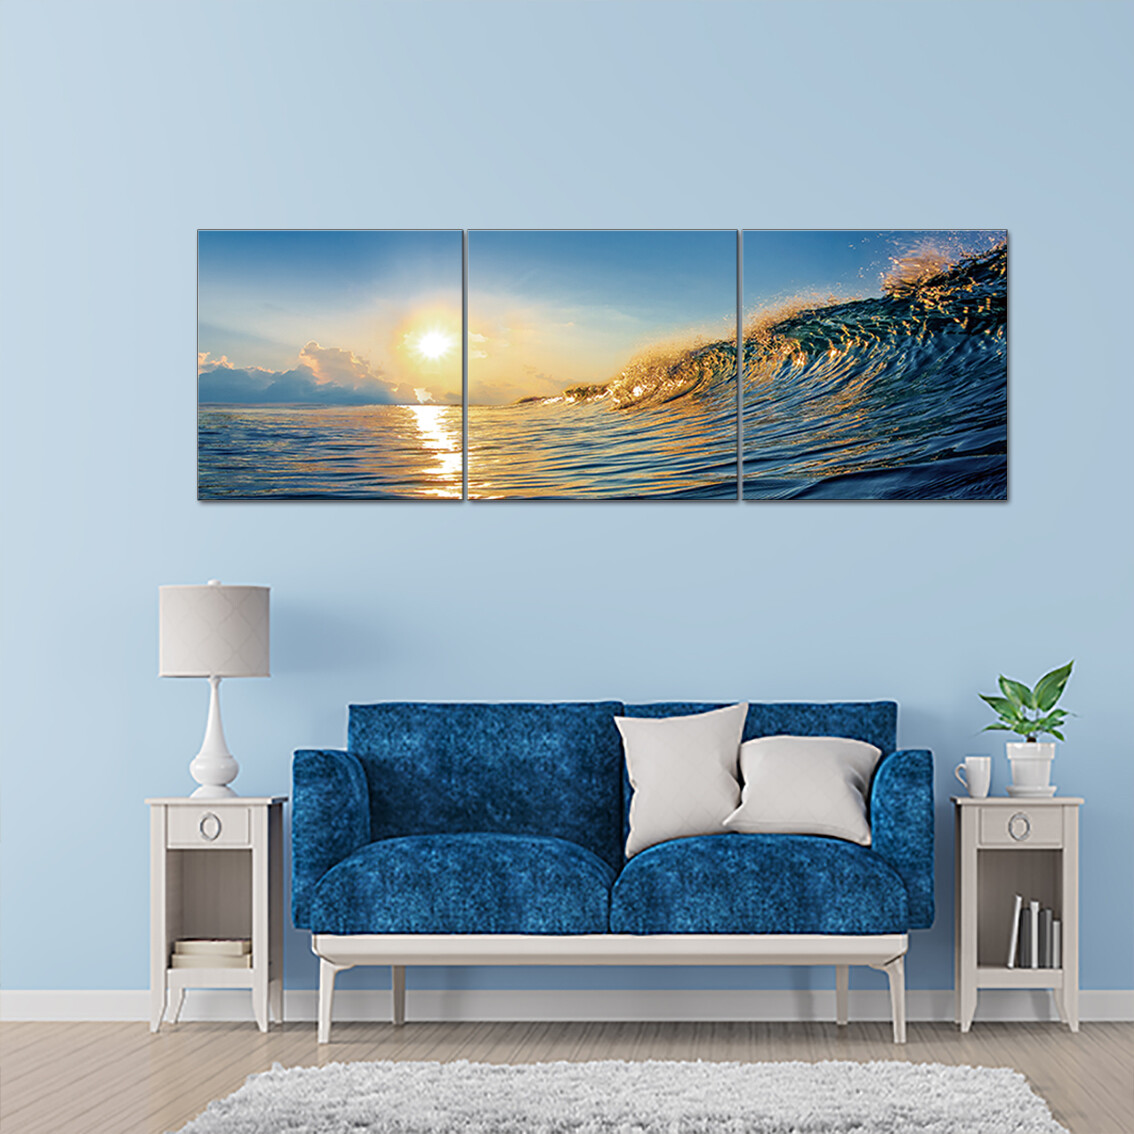 Wave In Motion (3 Panels)  - Modern Luxury Wall art Printed on Acrylic Glass - Frameless and Ready to Hang